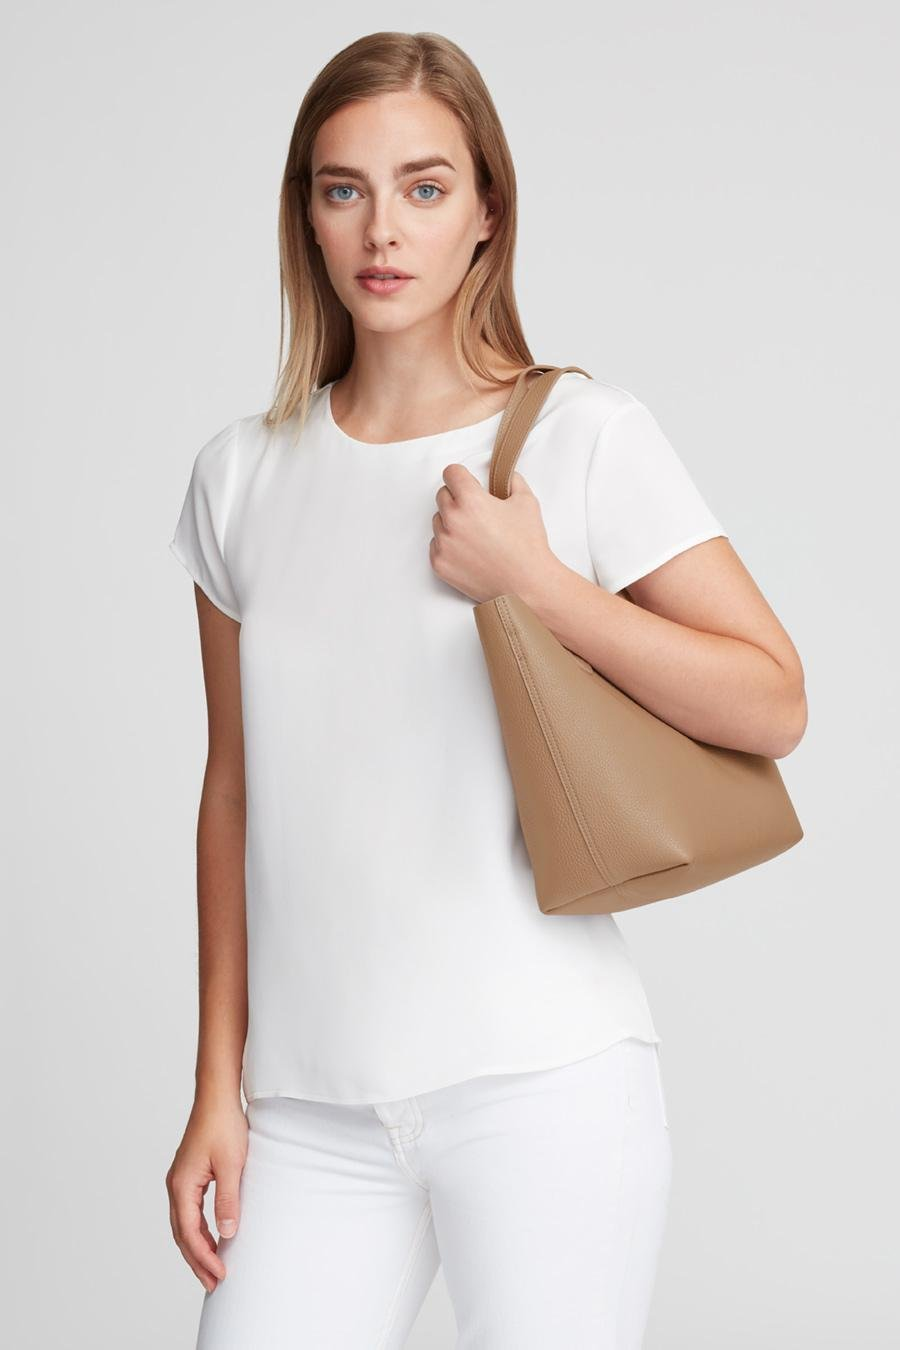 Women's Small Structured Leather Tote Bag in Cappuccino/Yellow | Pebbled Leather by Cuyana 6